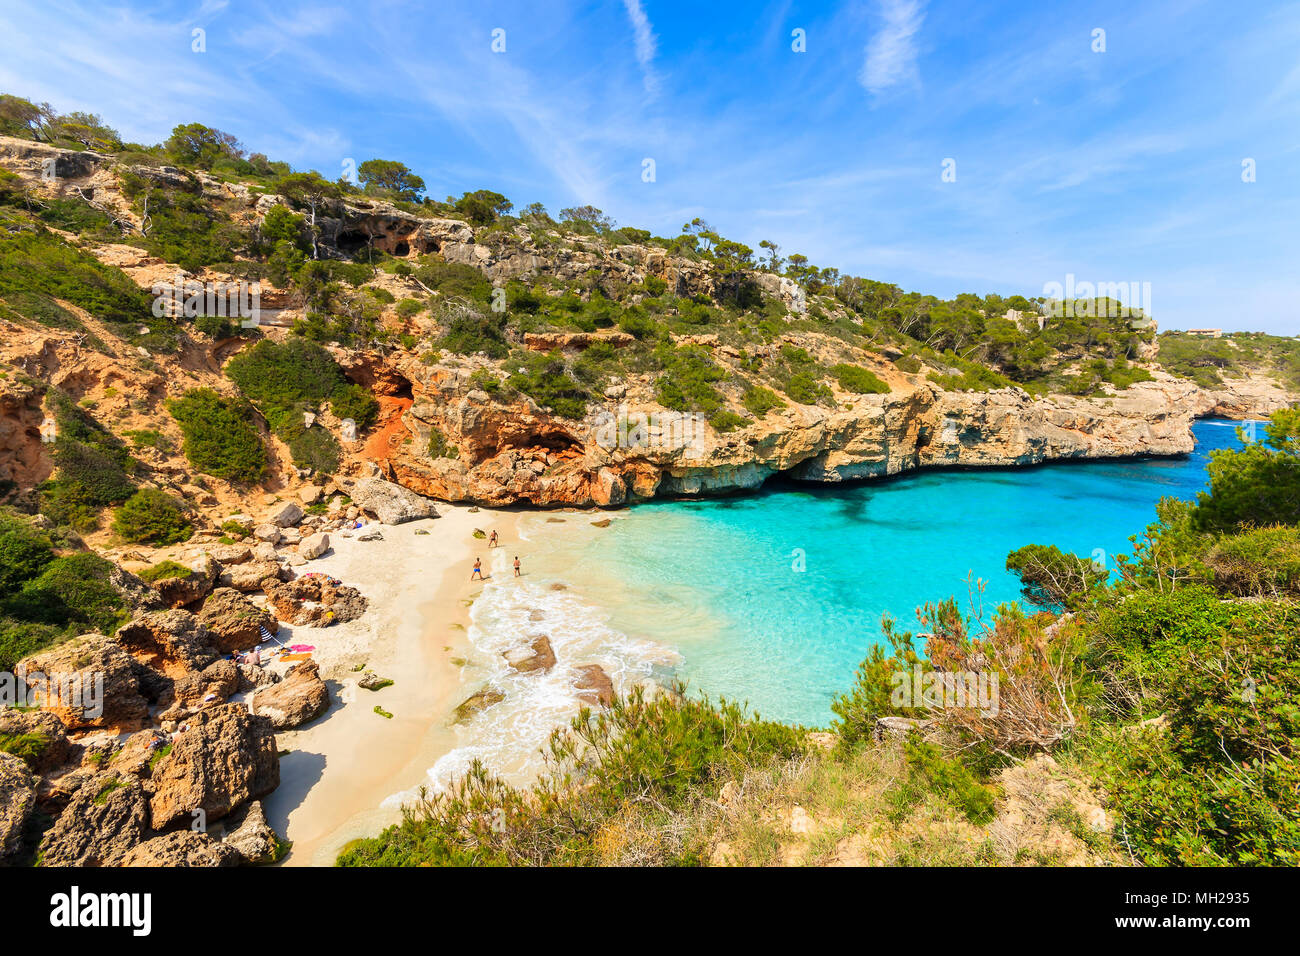 Unidentified people playing on beach, Cala des Moro, Majorca island, Spain - Stock Image